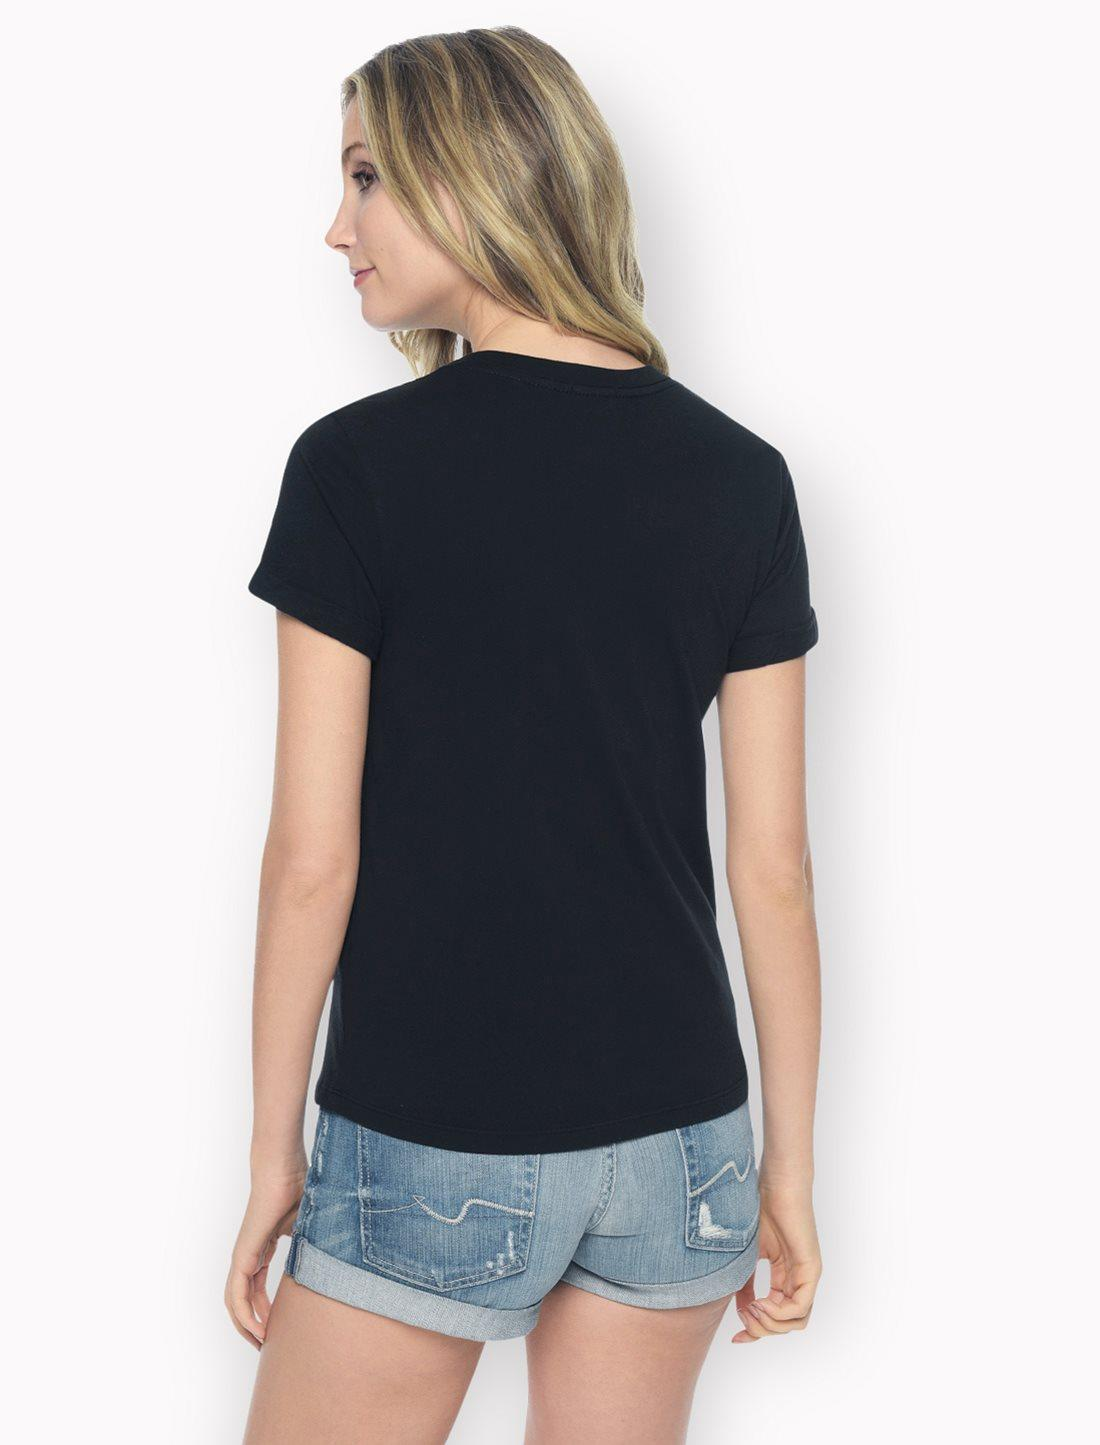 Splendid Baby Jersey Shrunken Tee in Black